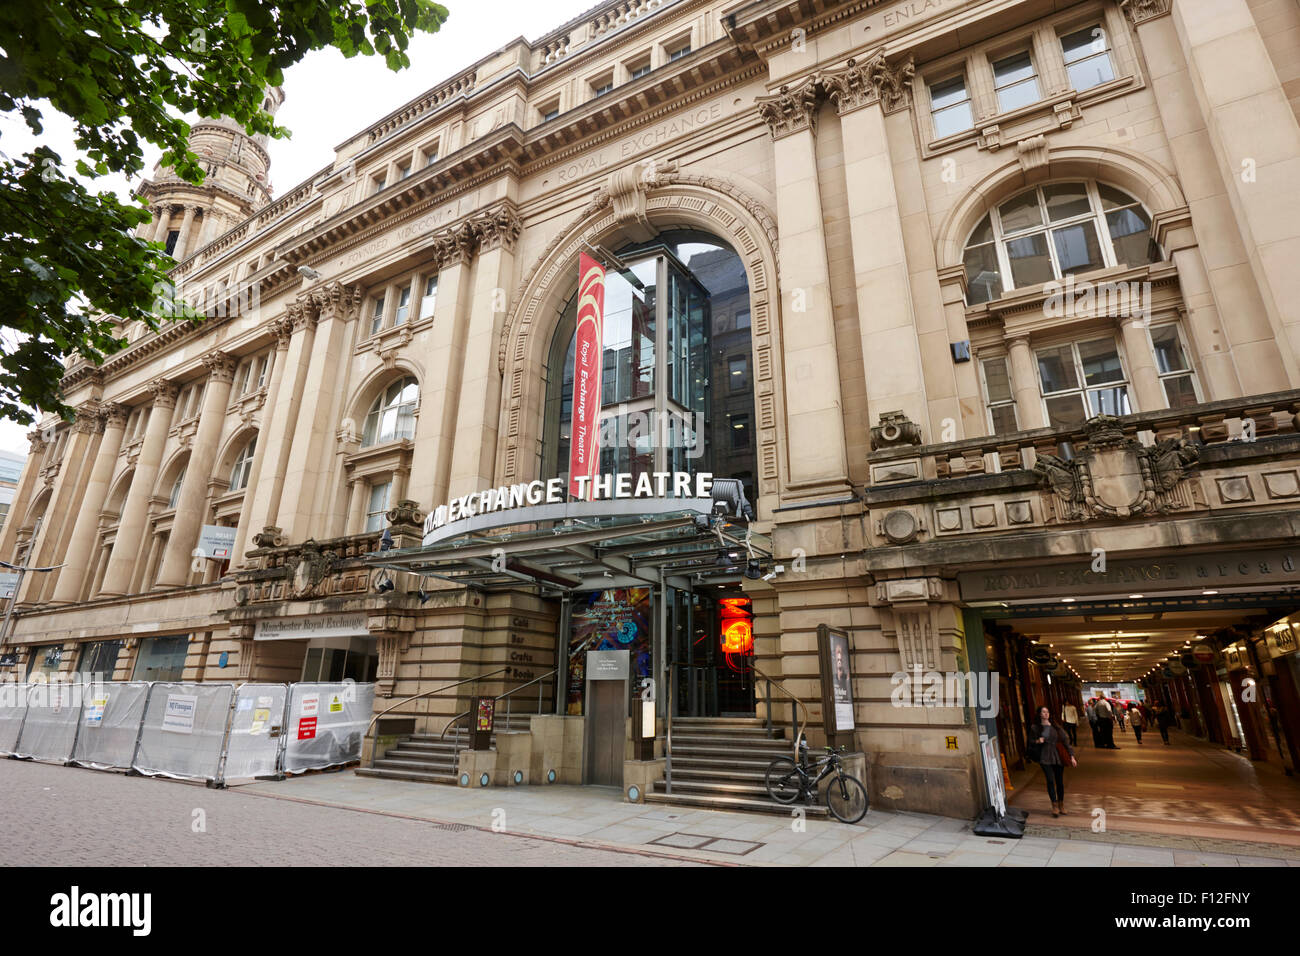 royal exchange theatre Manchester England UK - Stock Image